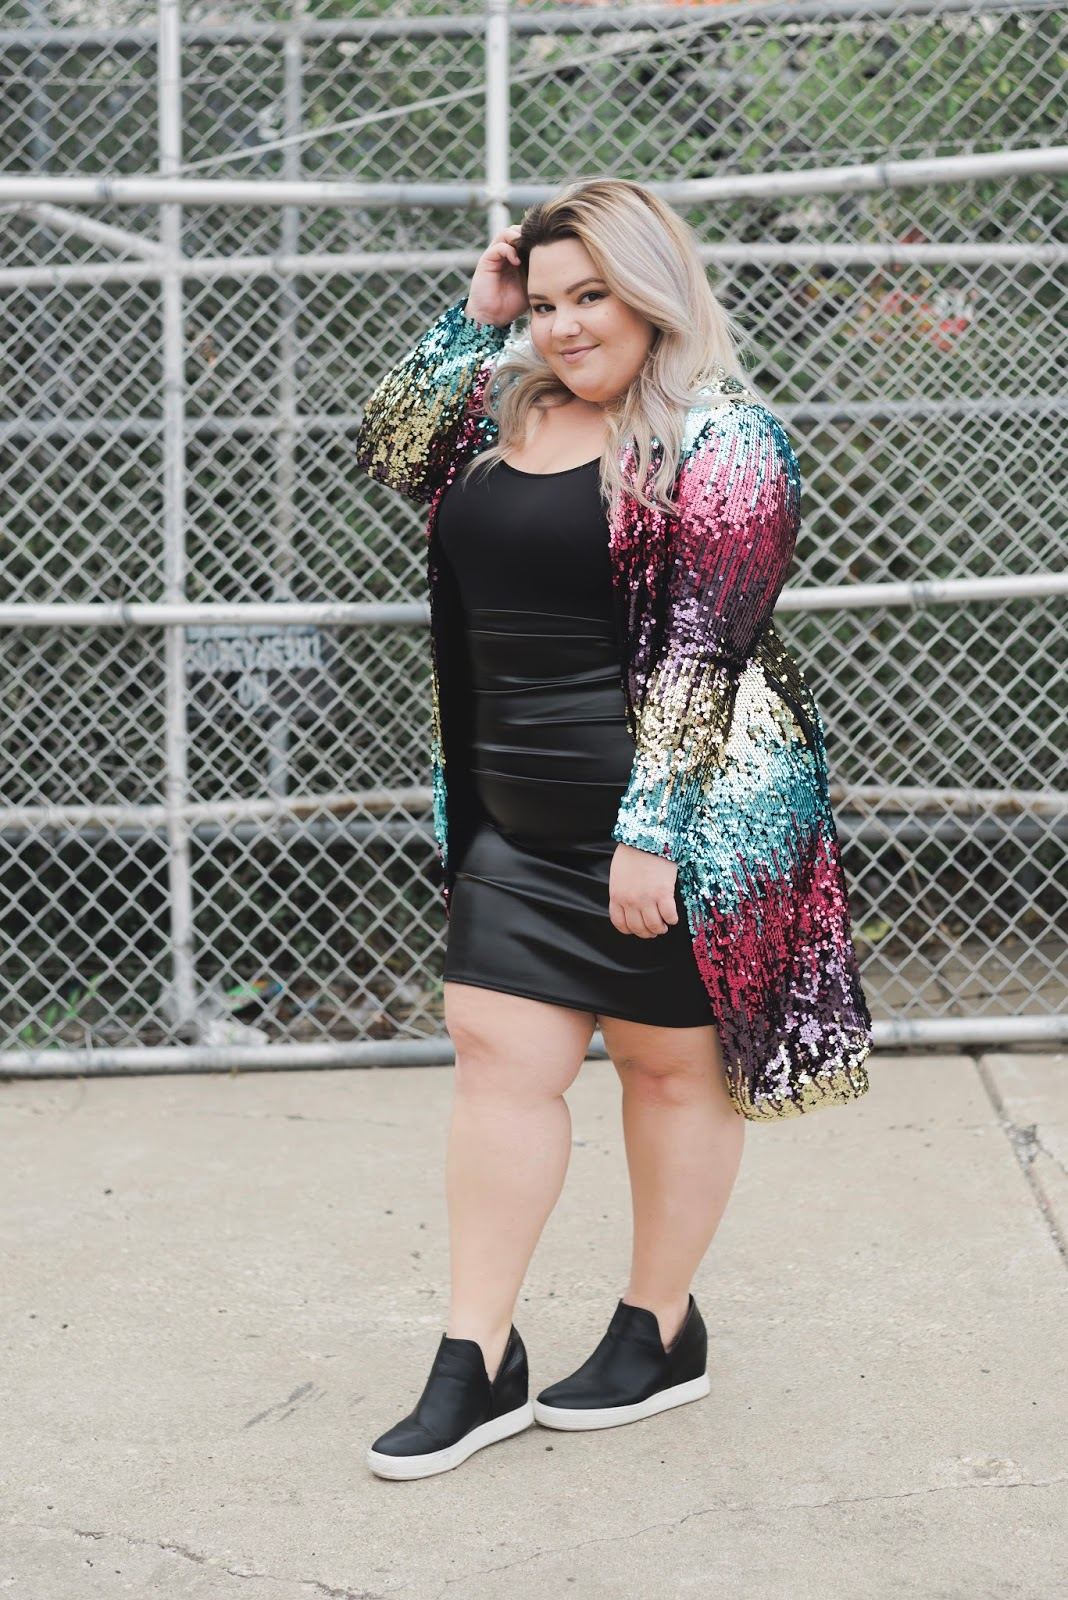 natalie Craig, natalie in the city, Chicago plus size fashion blogger, Chicago plus size model, sequin blazer, plus size sequins, wedge sneakers, inavie boutique, affordable plus size fashion, sequins fall 2017, how to wear sequins, plus model magazine, midwest blogger, Chicago fashion, rainbow sequins, curves and confidence